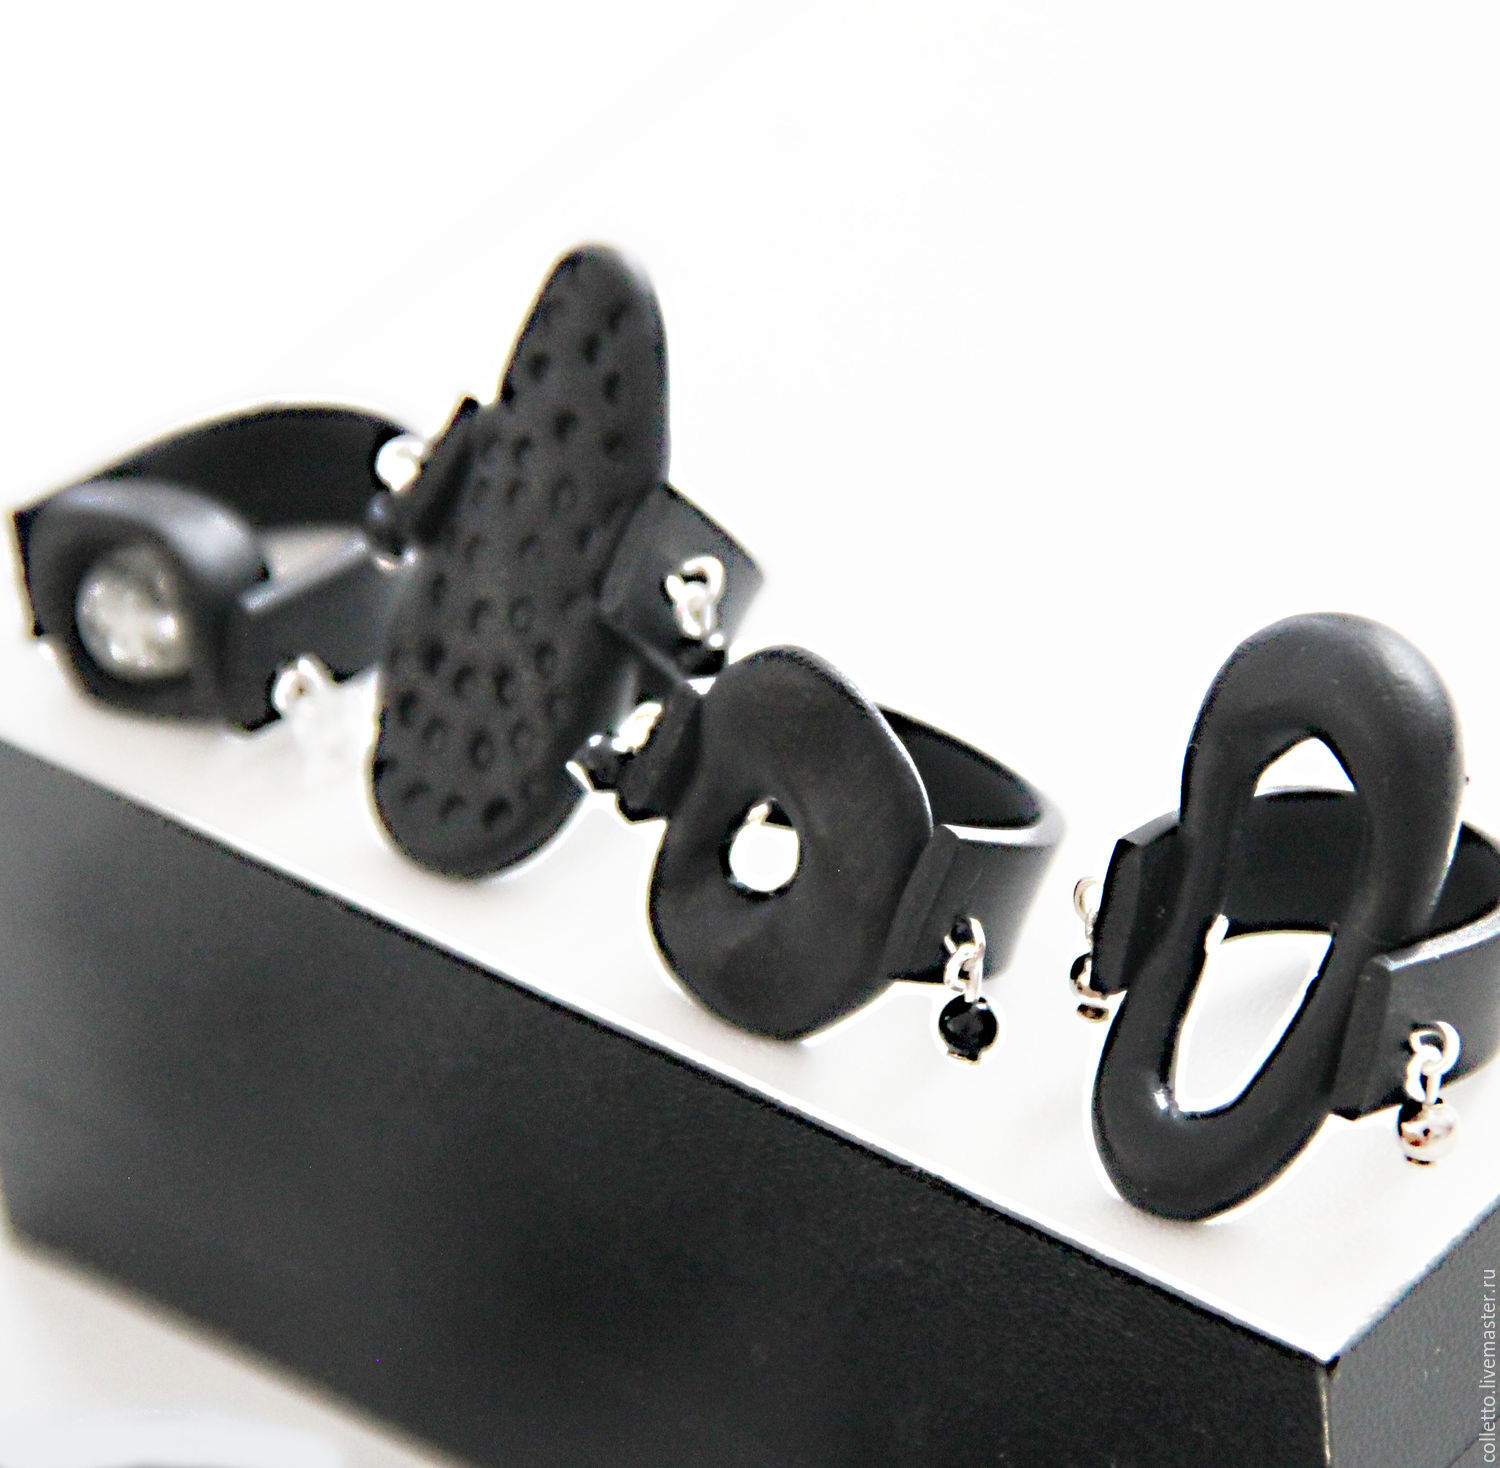 Rubber ring \